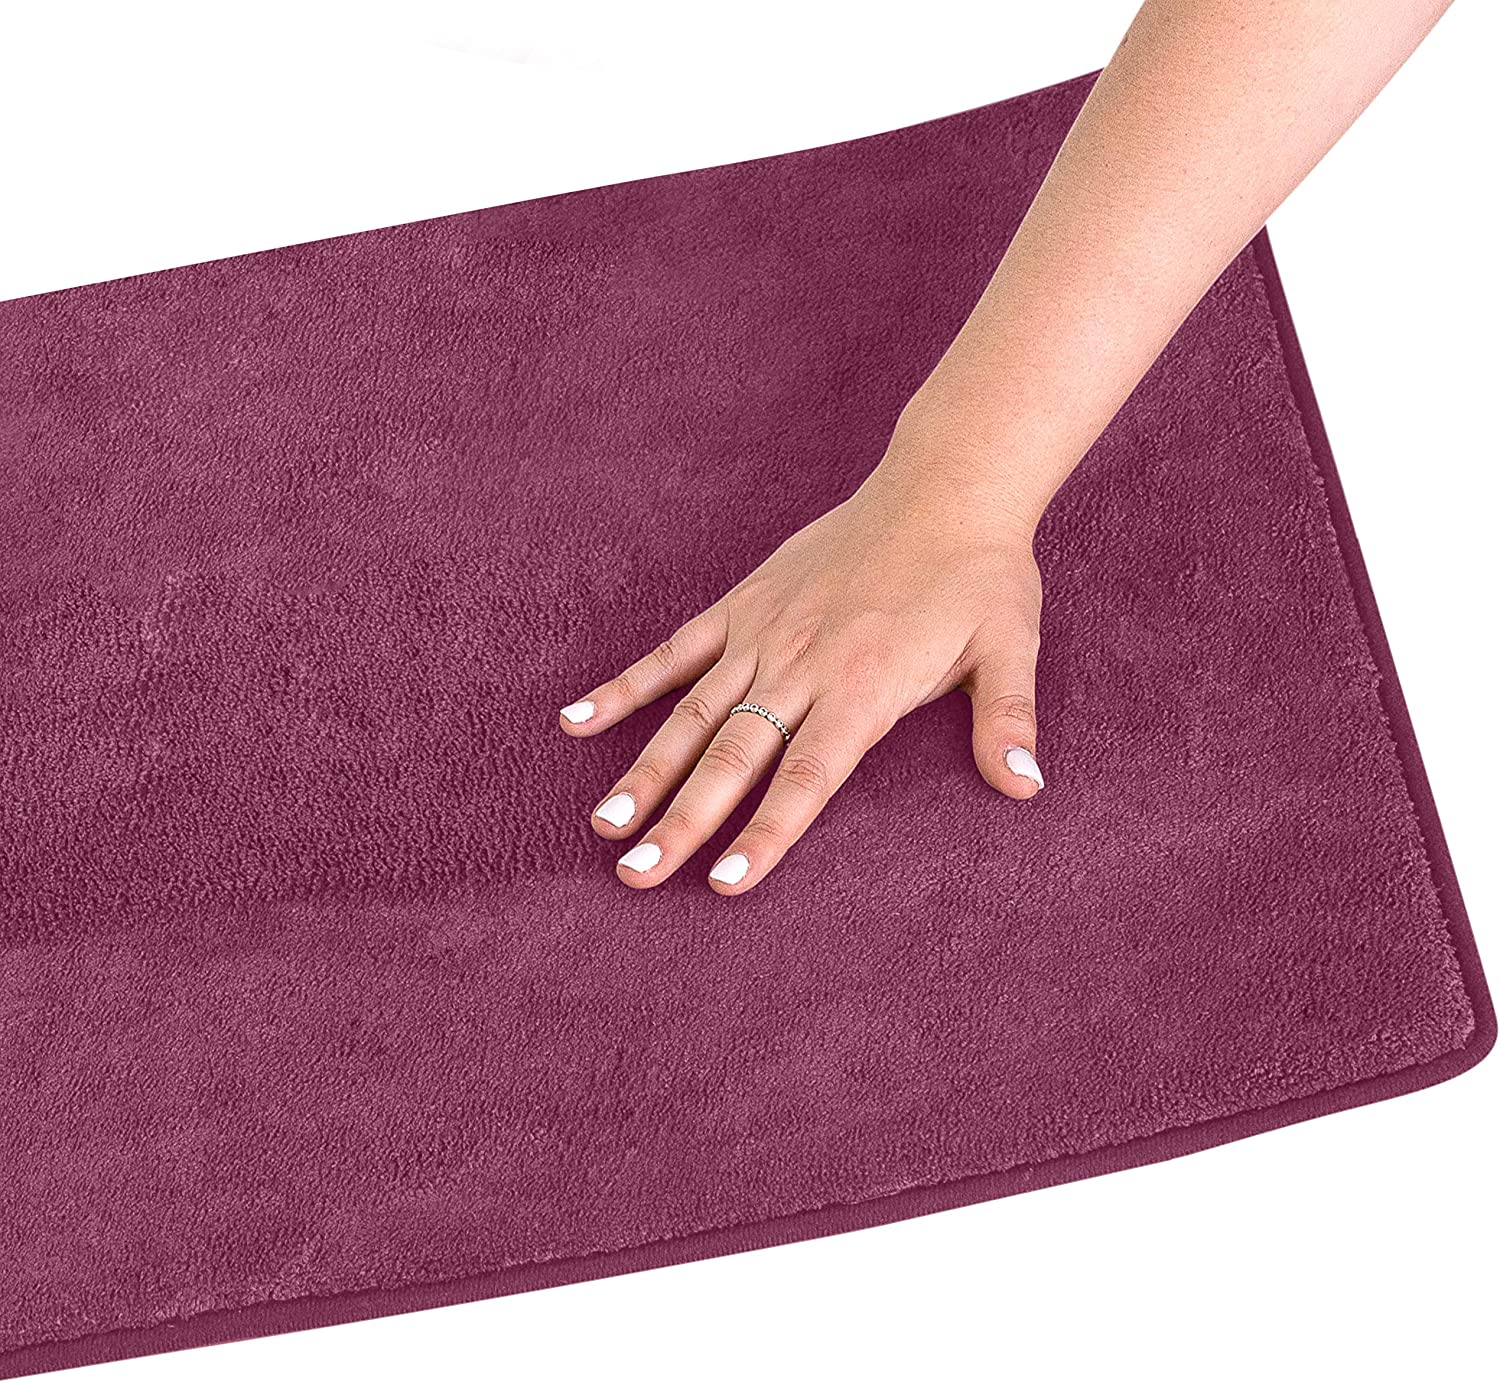 Amazon Com Simple Deluxe Plum Purple Bath Or Kitchen Mat Memory Foam Rug Non Slip Backing Washable Absorbent Alfombras Para Banos Home Kitchen